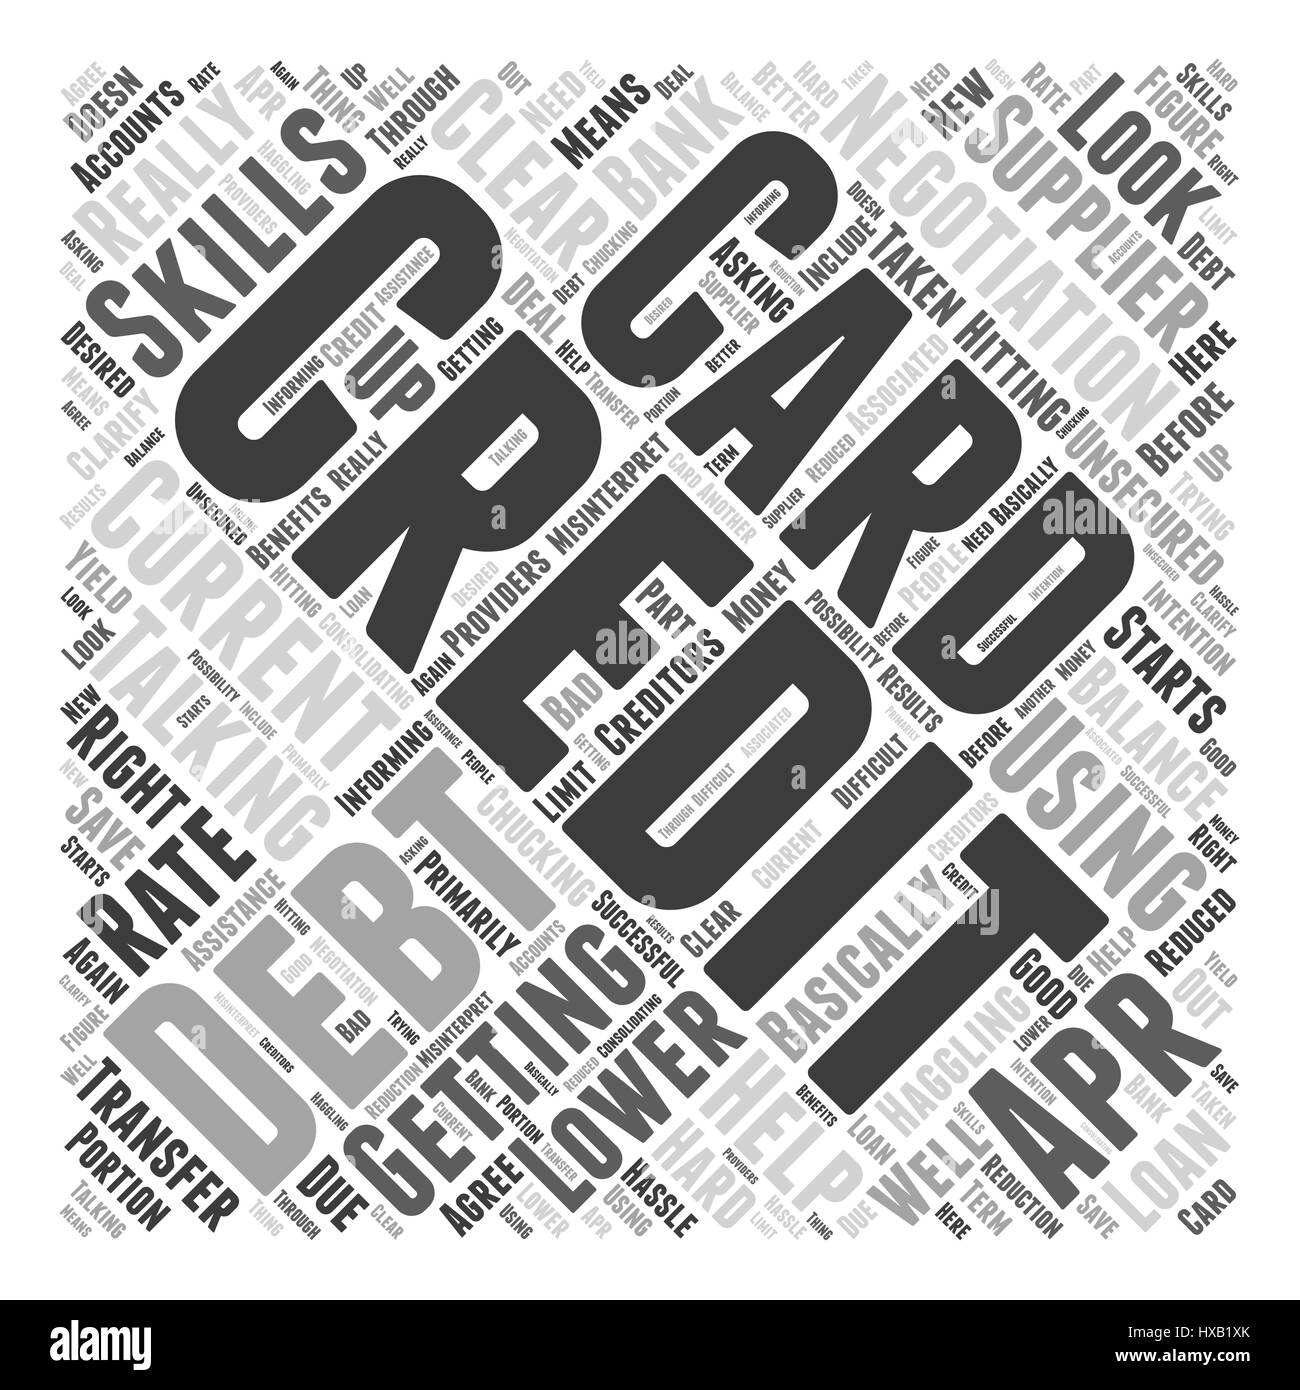 Haggling With Your Creditors Word Cloud Concept - Stock Image